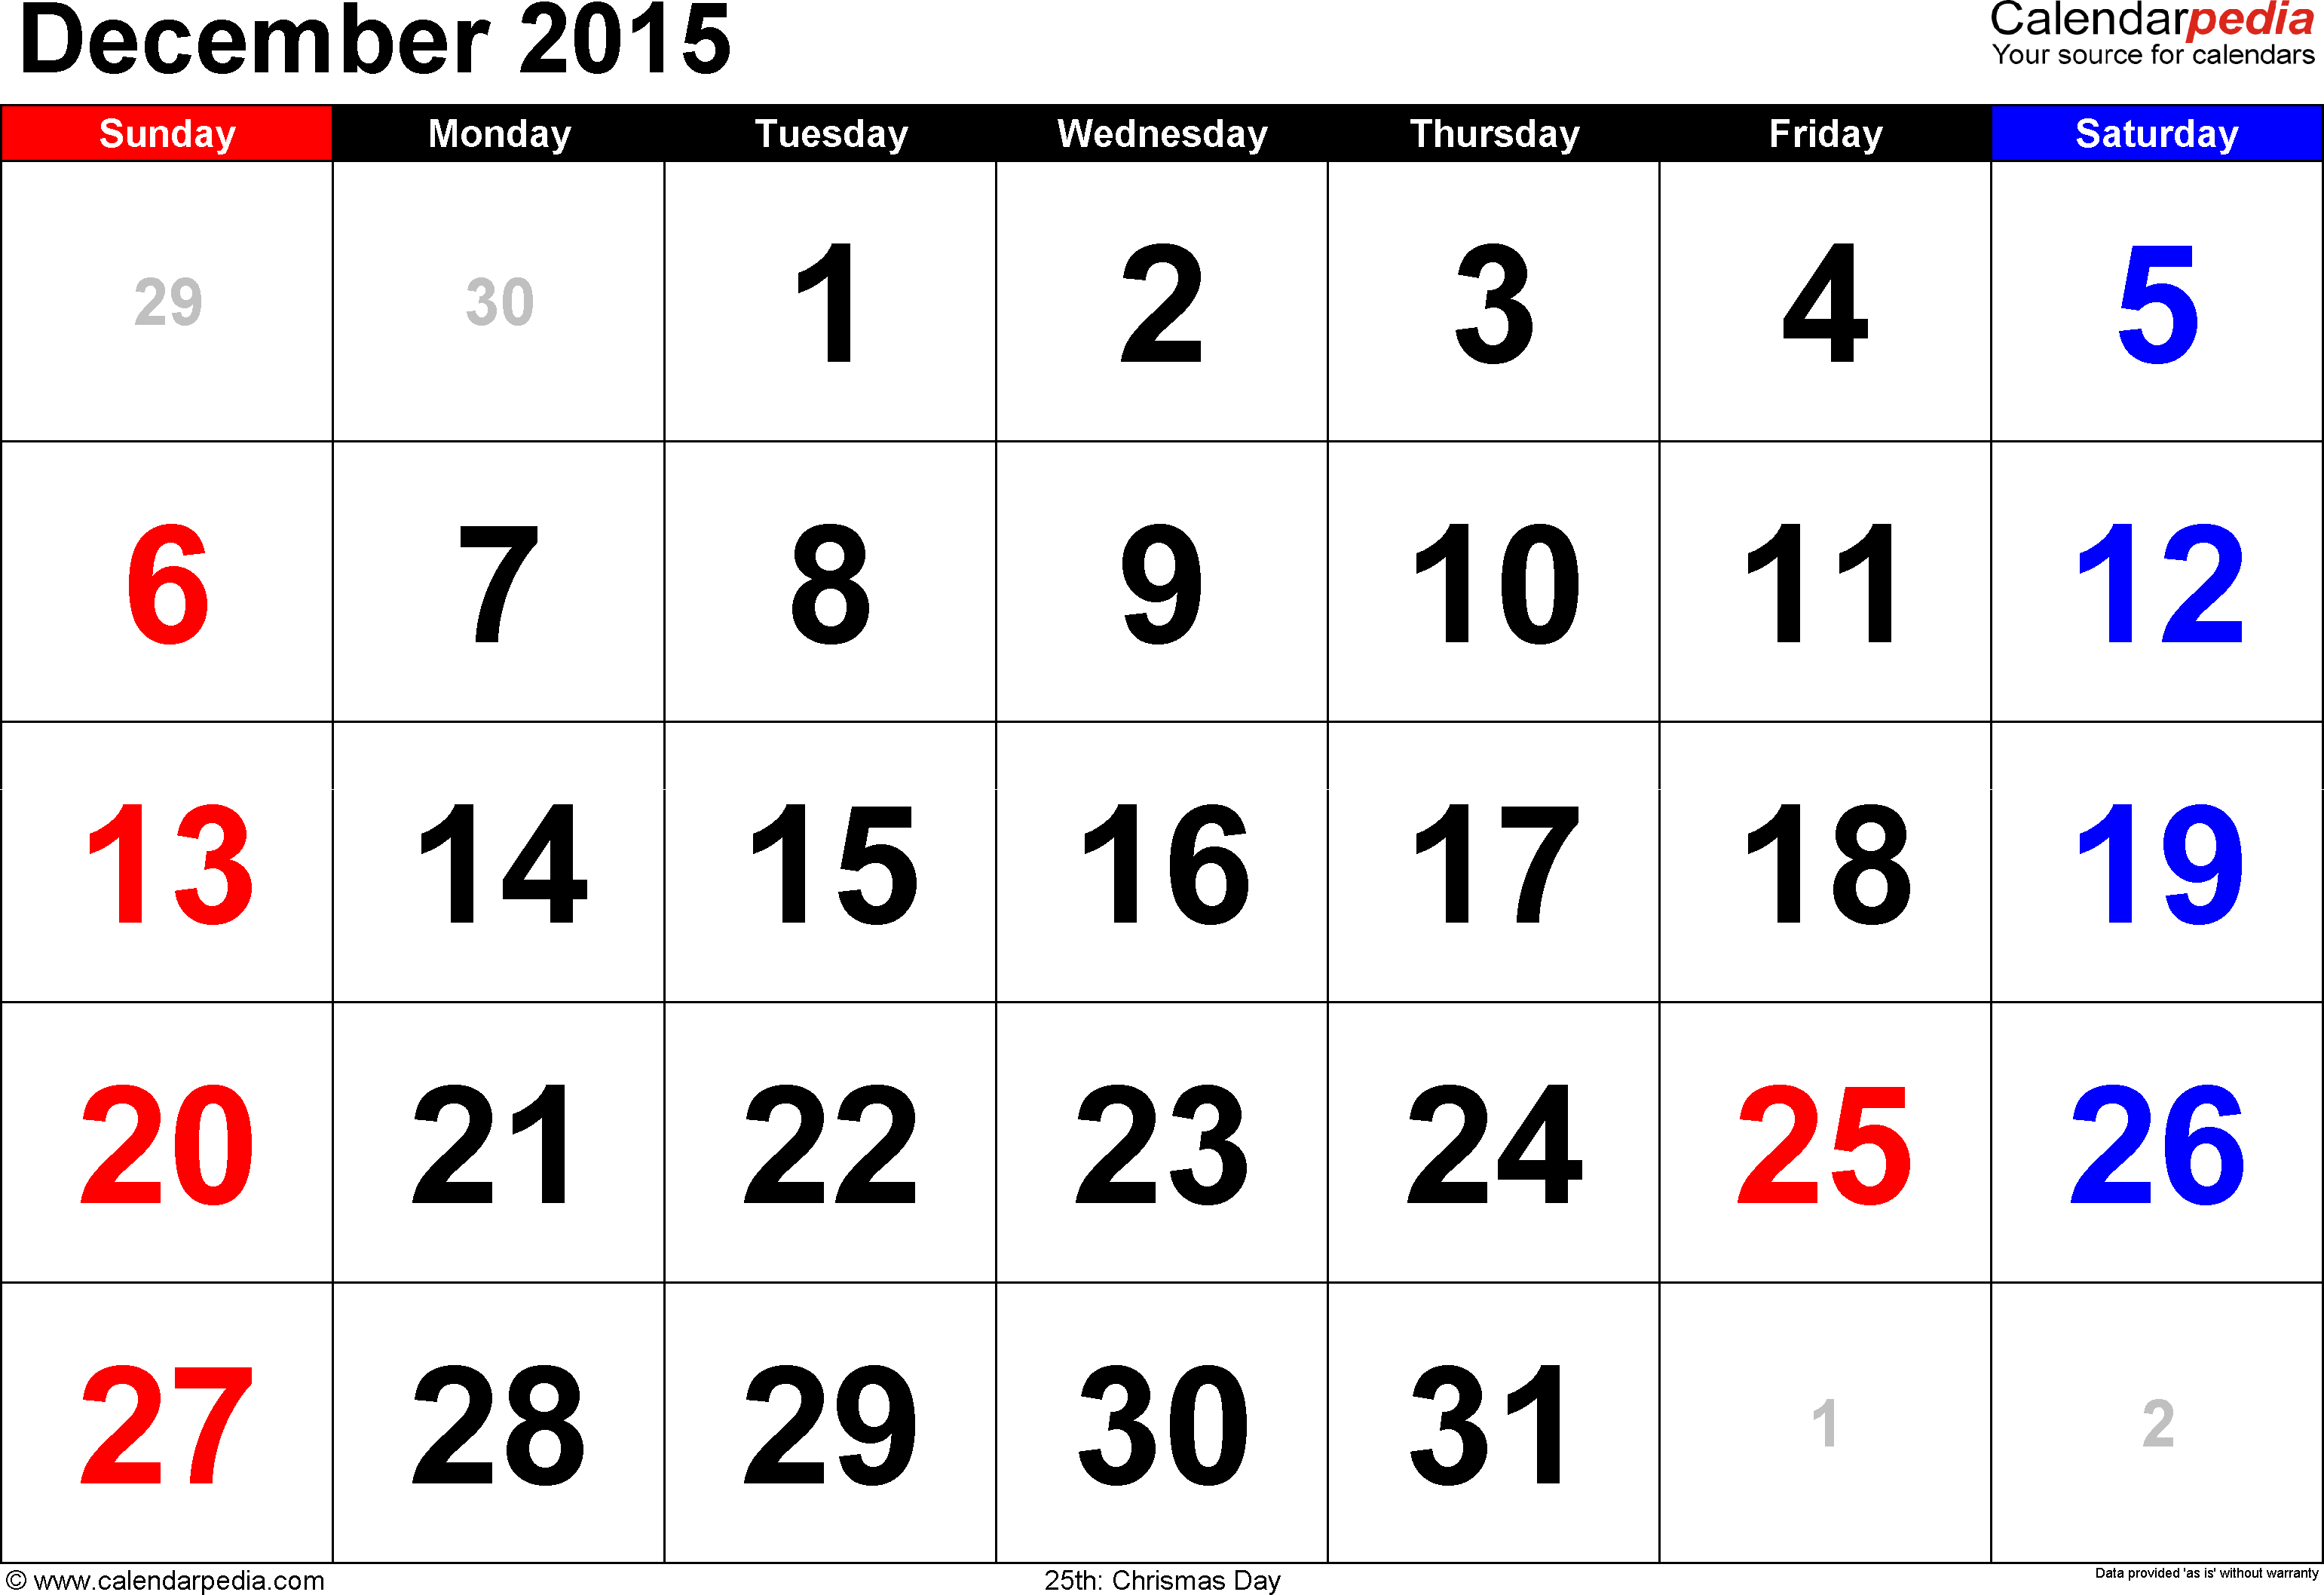 December 2015 calendar, landscape orientation, large numerals, available as printable templates for Word, Excel and PDF